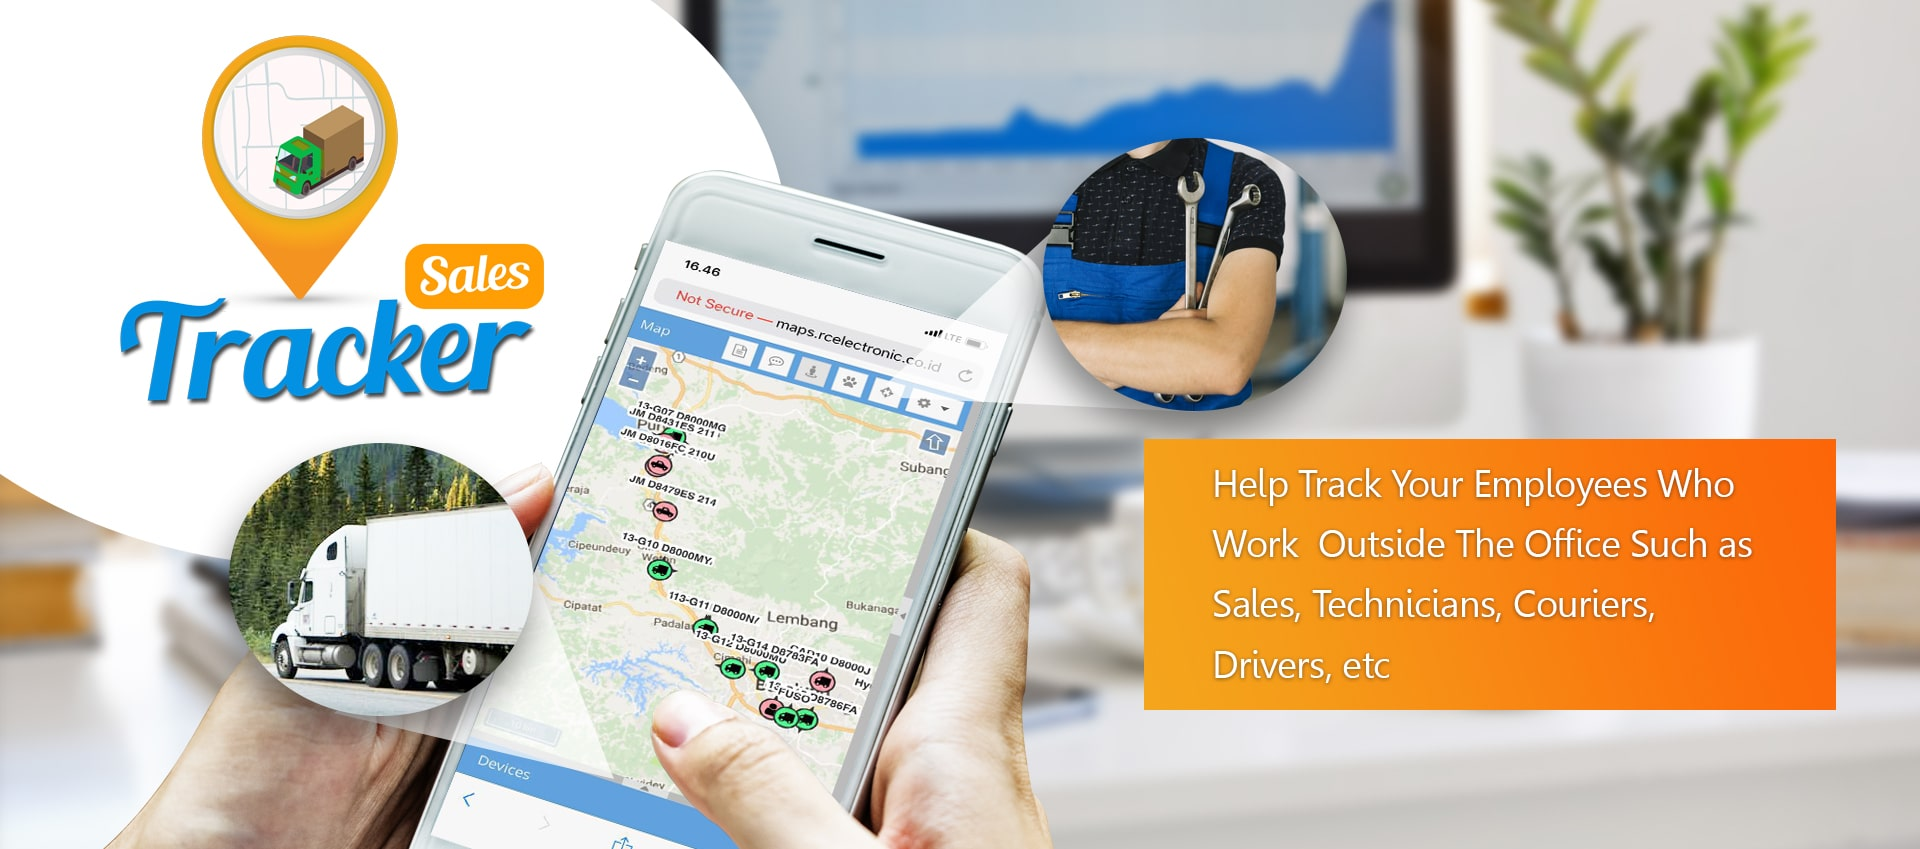 Help Track Your Employees Who Work  Outside The Office Such as Sales, Technicians, Couriers, Drivers, etc using mobile gps tracker mytrack